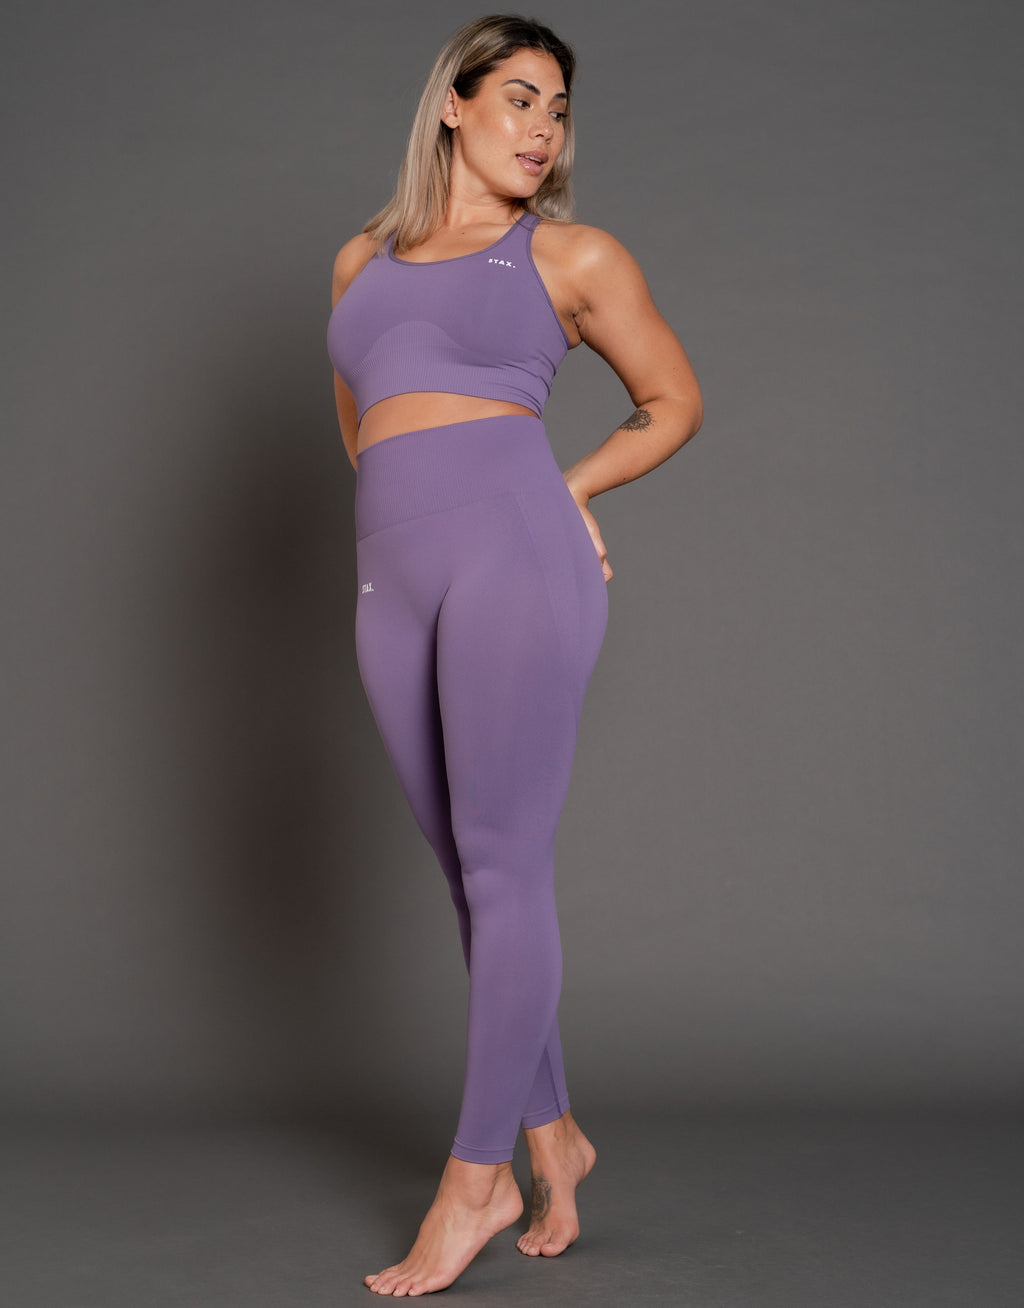 STAX. Premium Seamless V3 Full Length Tights - Amethyst (Purple)